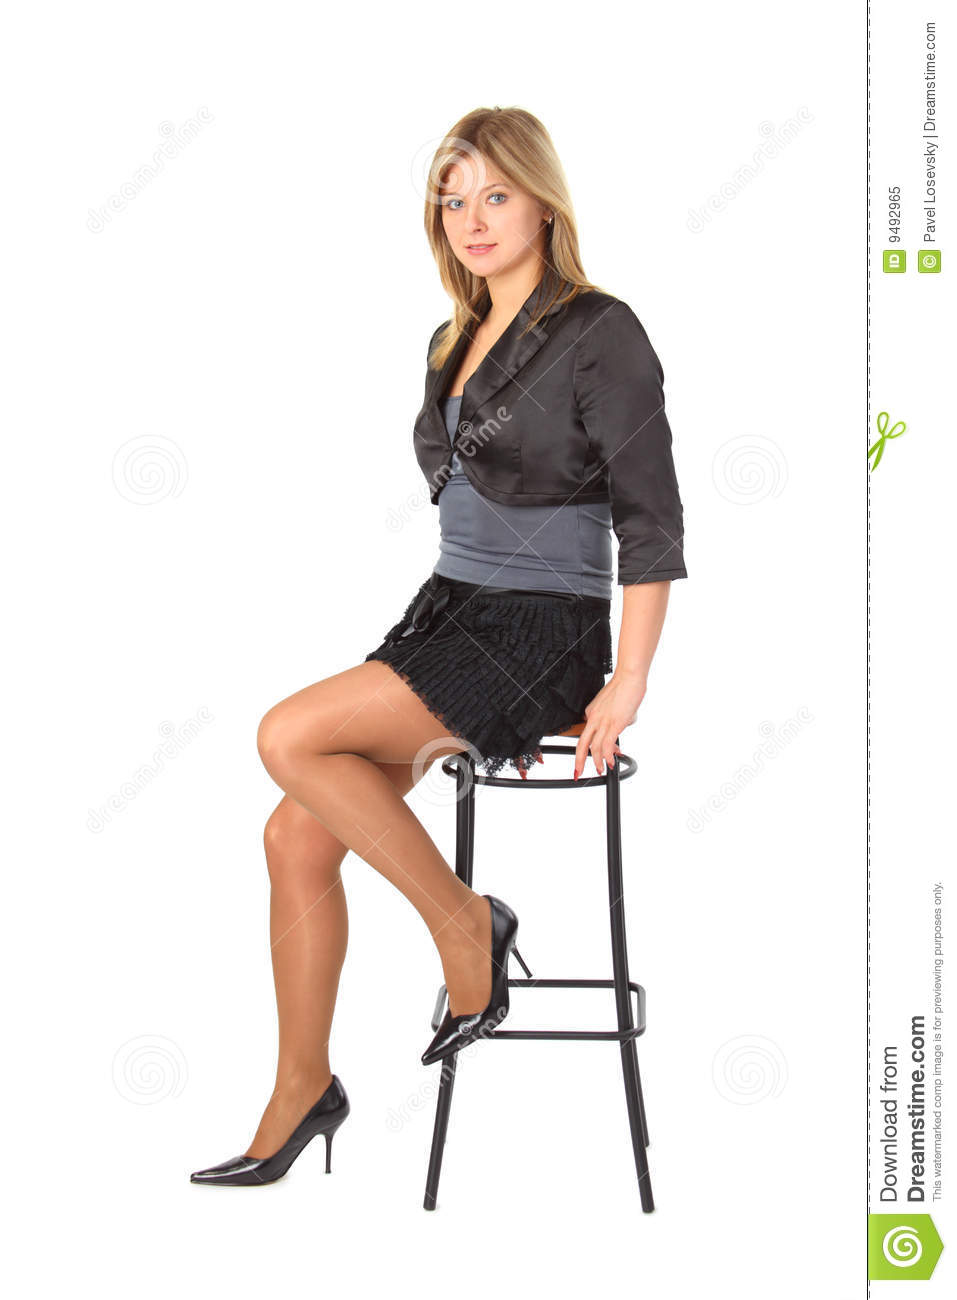 Theme, interesting Girl on bar stool